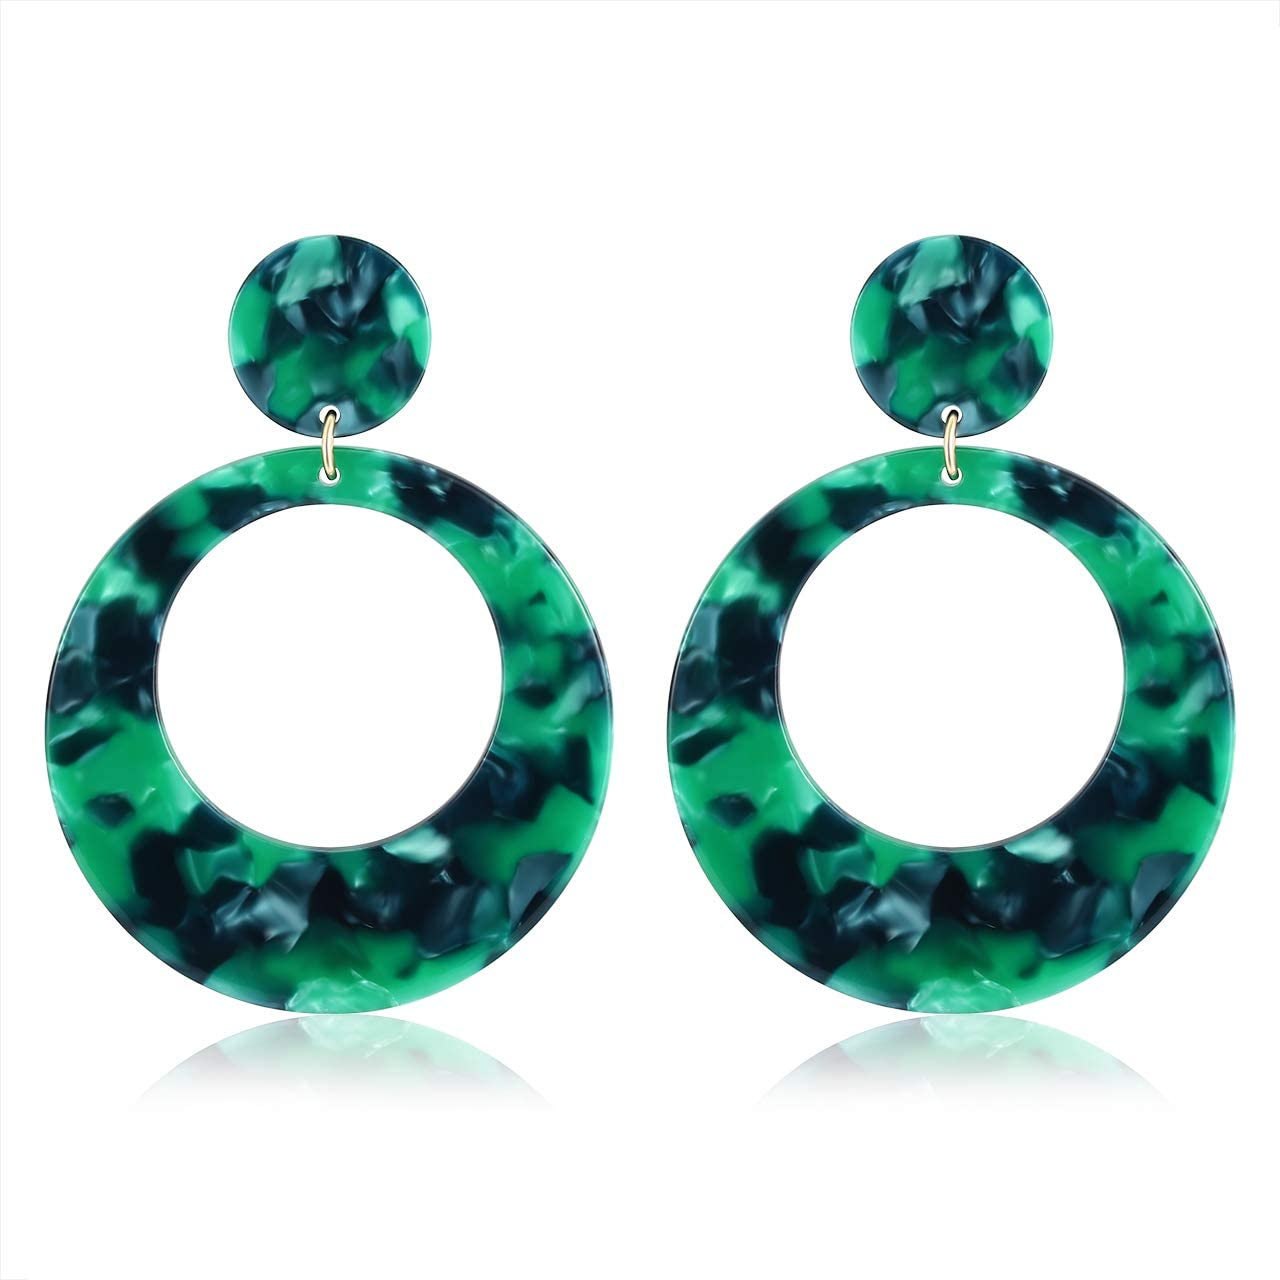 YAHPERN Acrylic Earrings for Women Girls Statement Geometric Earrings Resin Acetate Drop Dangle Earrings Mottled Hoop Earrings Fashion Jewelry